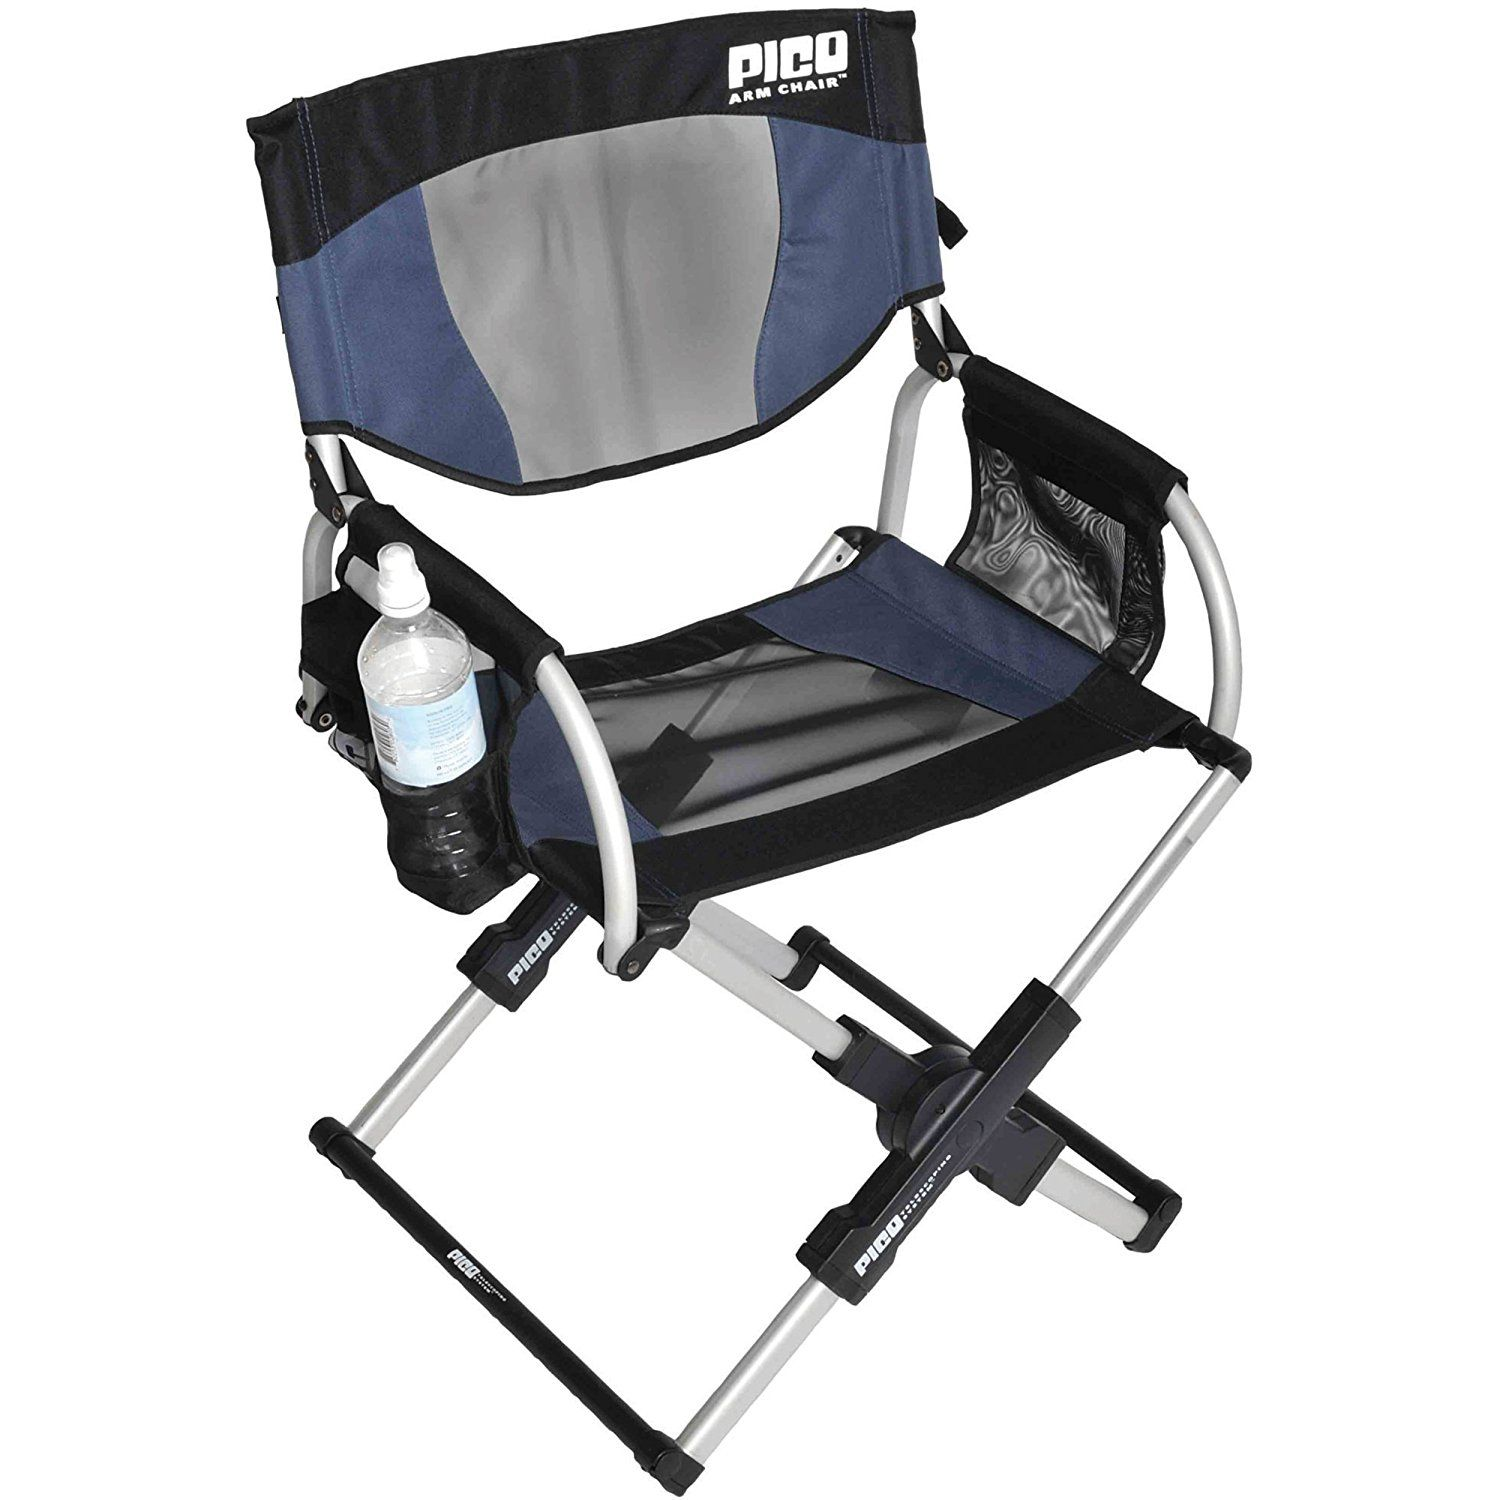 Amazon Com Gci Outdoor Pico Compact Folding Camp Chair With Carry Bag Navy Camping Chairs Comfortable Camping Chair Folding Camping Chairs Tailgate Chairs